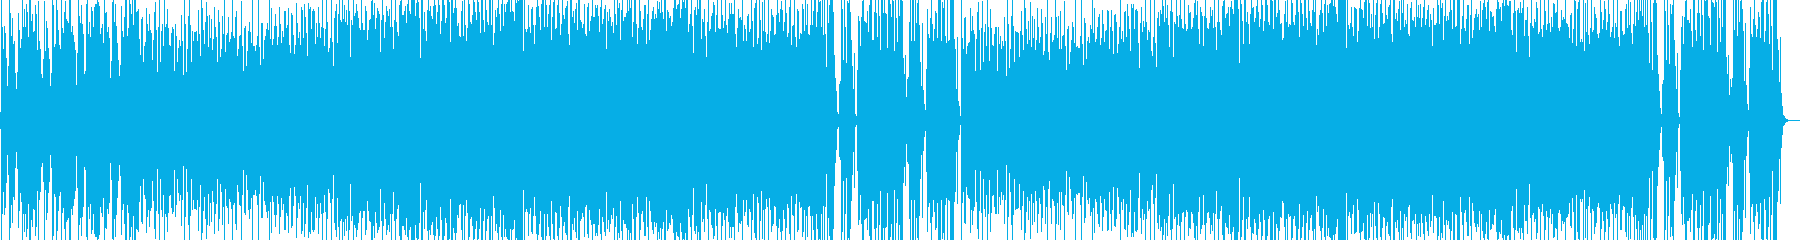 Fun celtic music's reproduced waveform